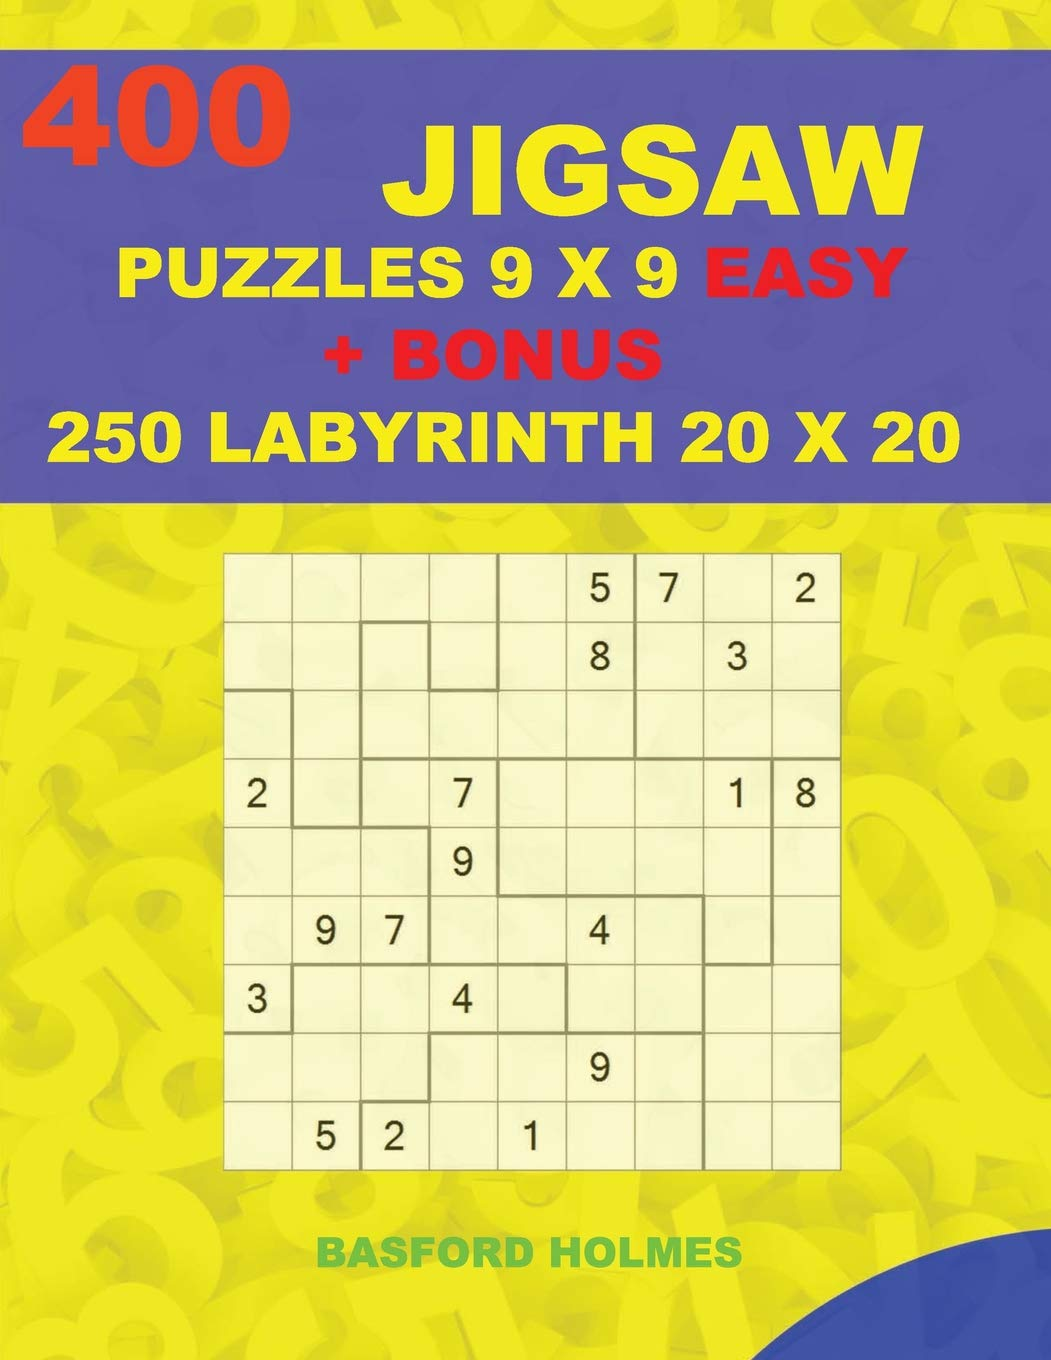 graphic about Monster Sudoku Printable titled 400 JIGSAW puzzles 9 x 9 Uncomplicated + Reward 250 LABYRINTH 20 x 20